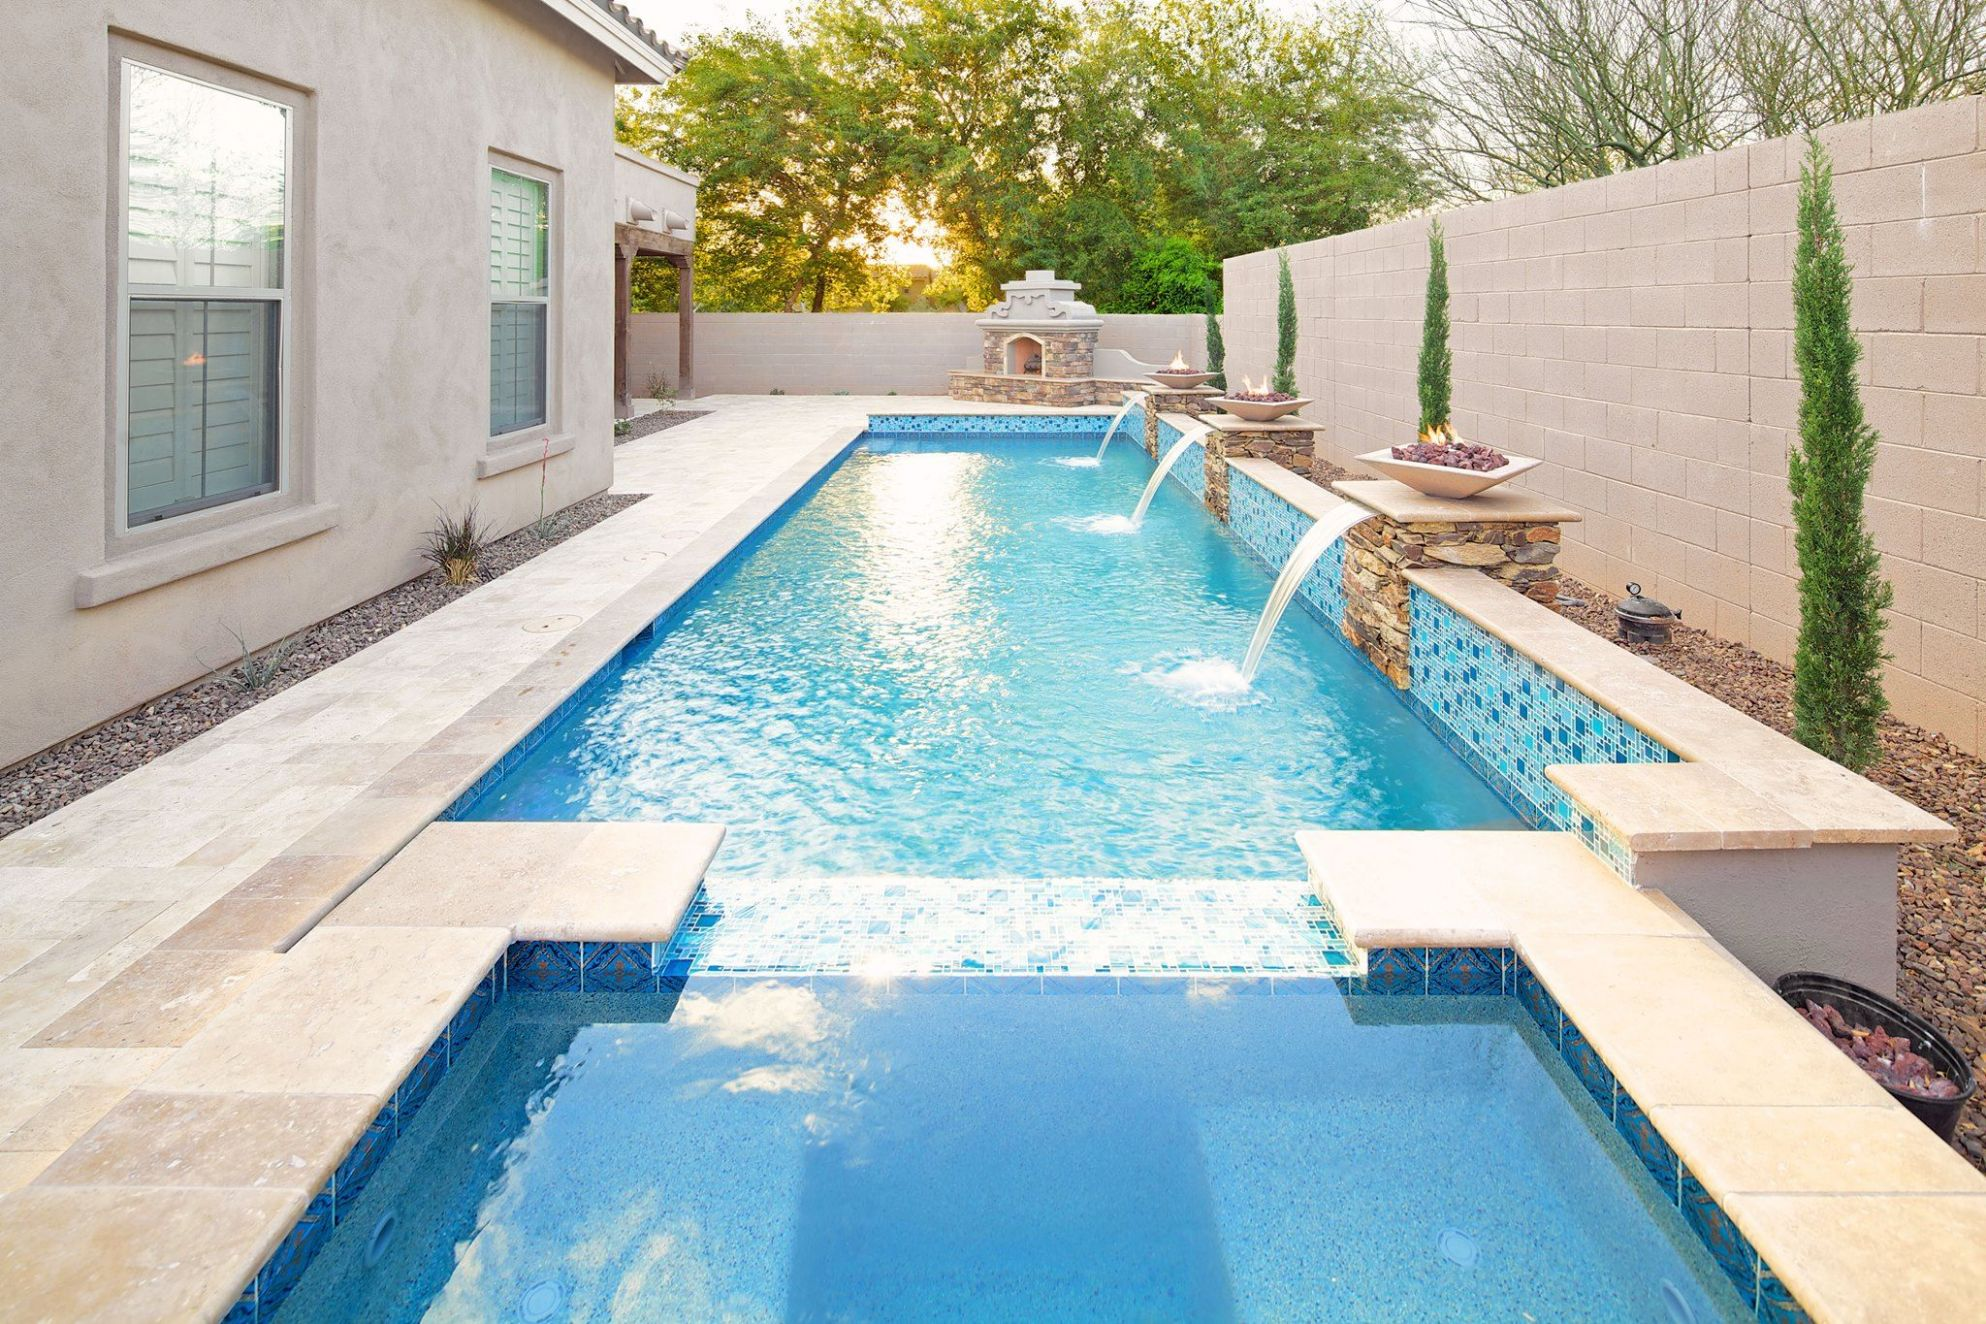 Rectangular pool with white stone and fountains | Pool designs ...